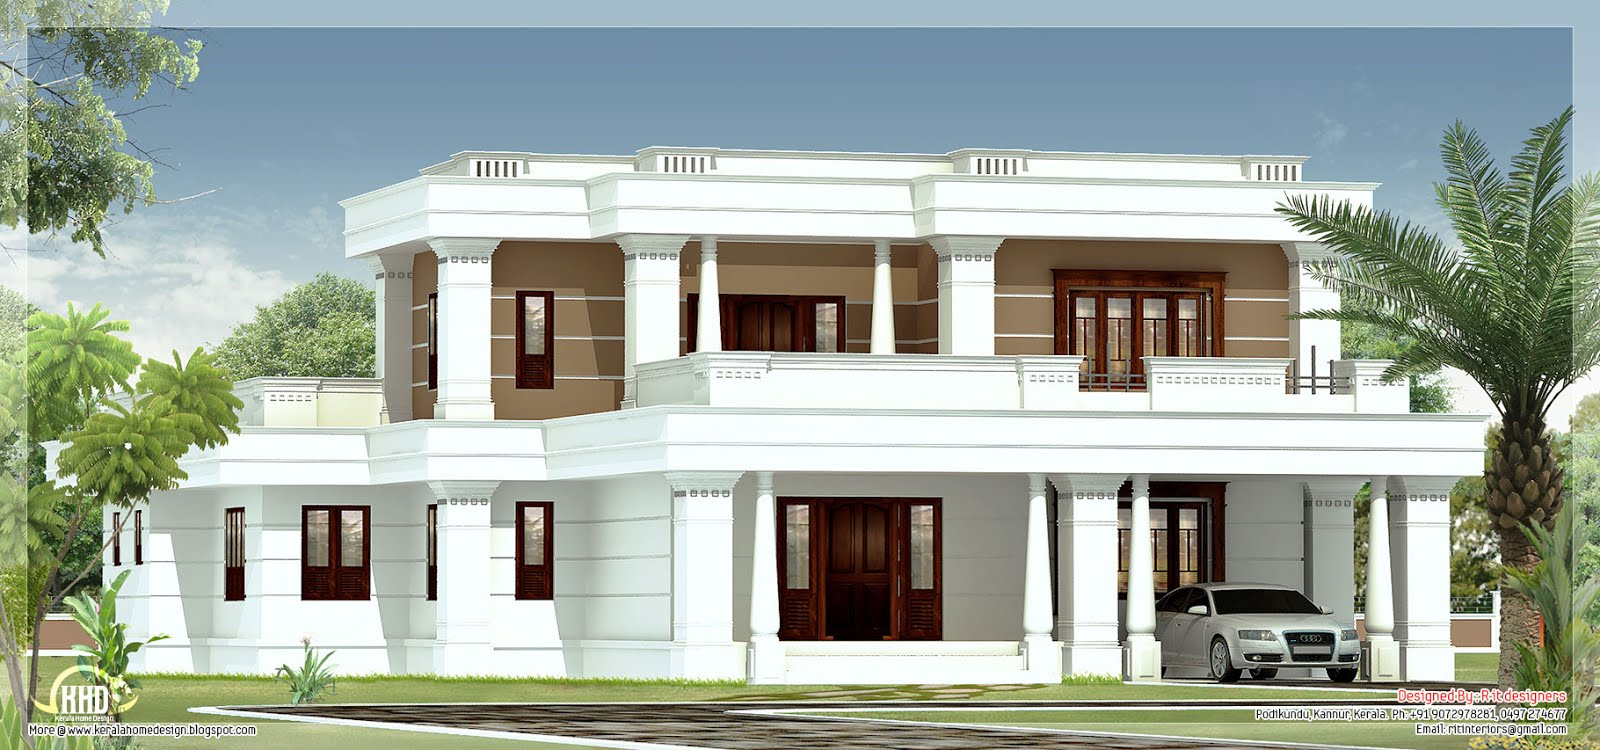 4 bedroom flat roof villa kerala home design and floor plans for Apartment roof design